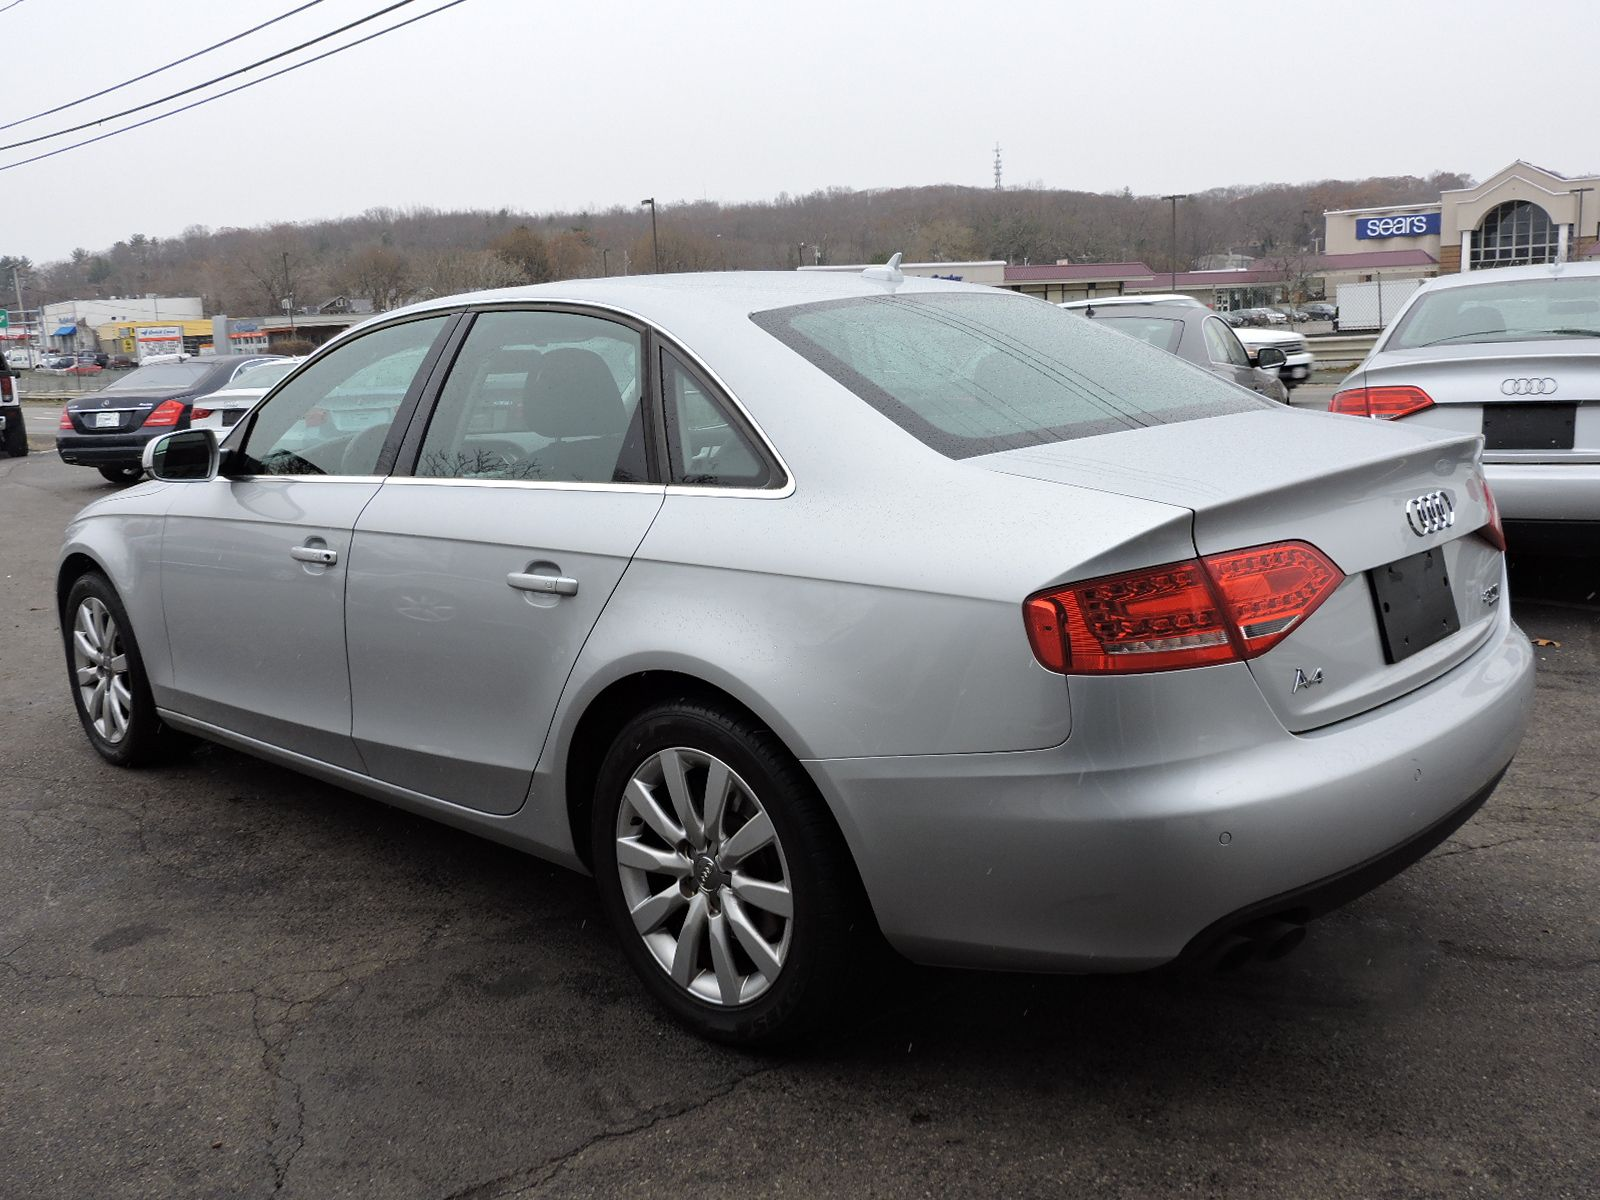 2010 Audi A4 - 2.0T Quattro - All Wheel Drive - Navigation